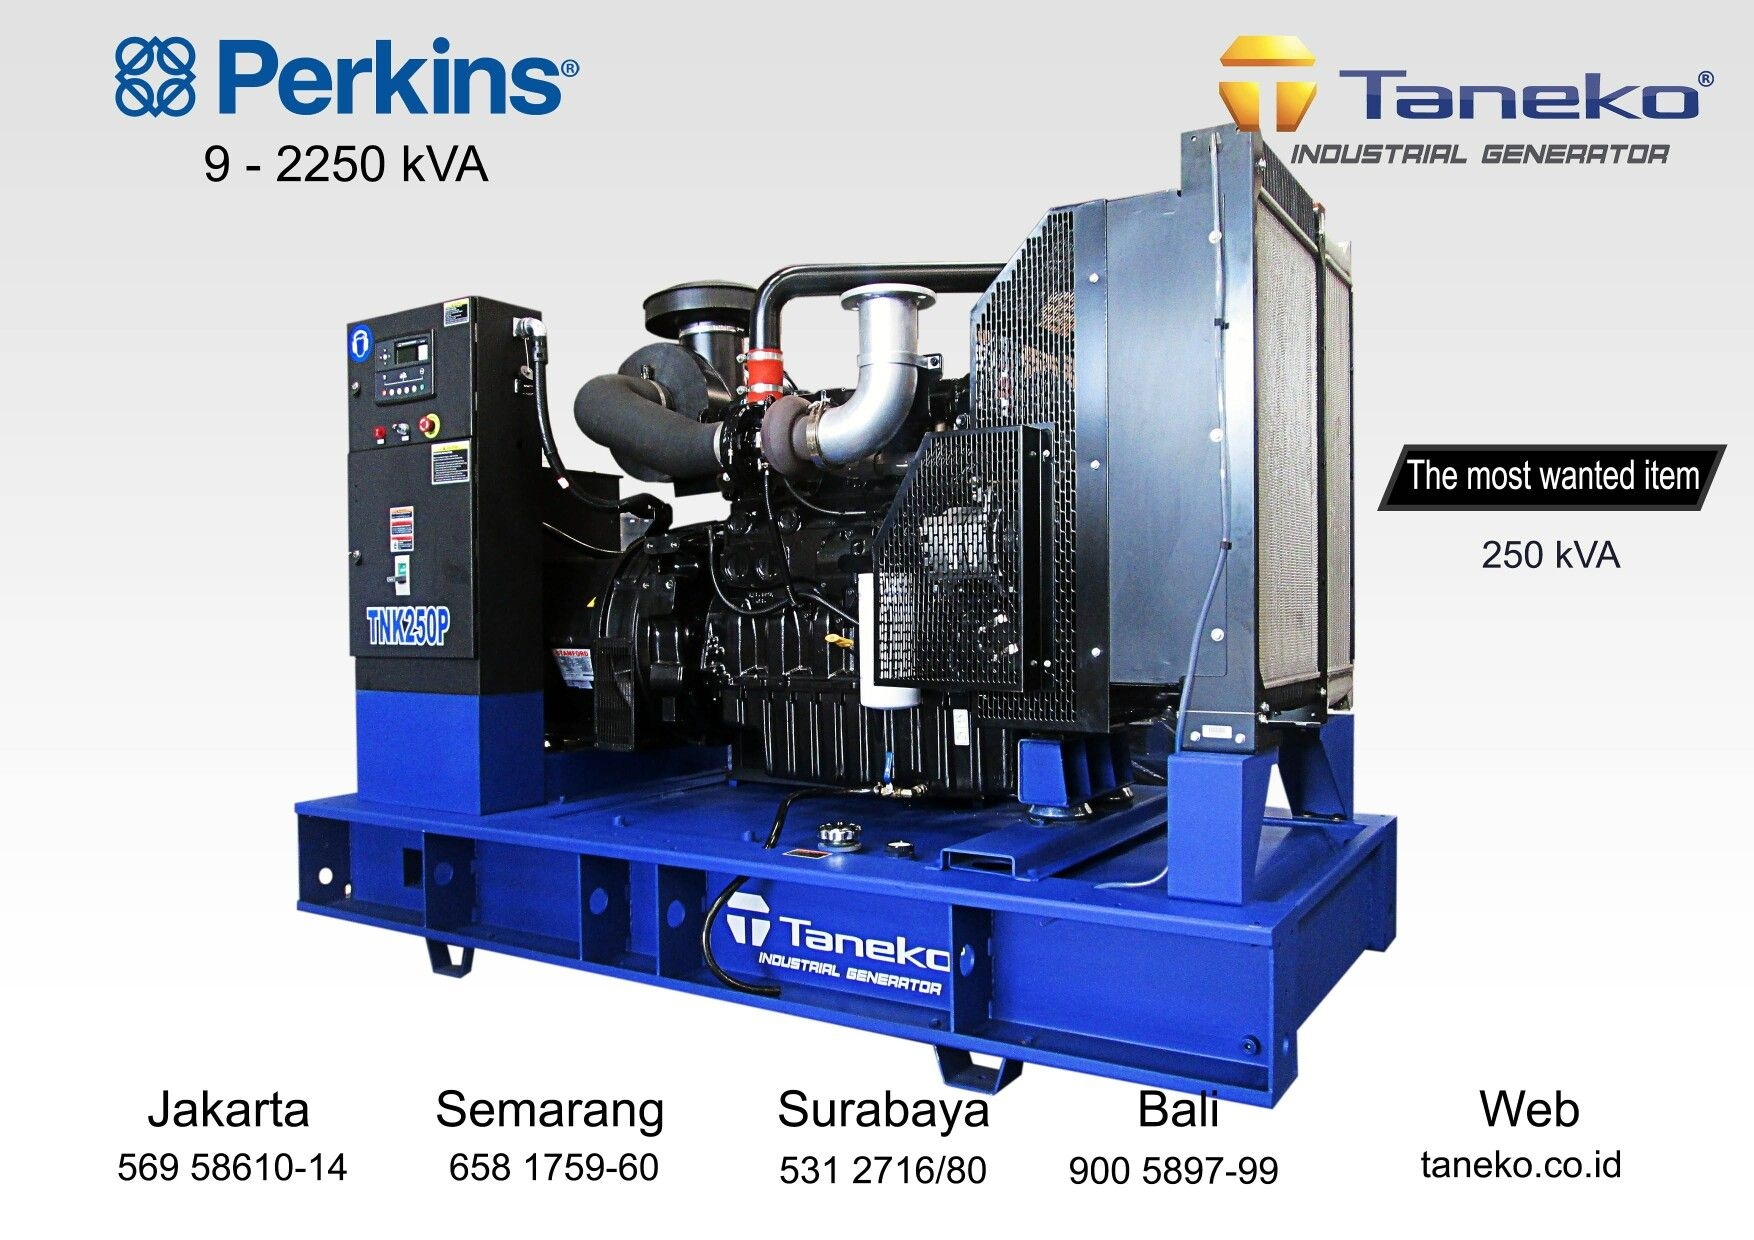 at frame the most wanted item of perkins 1500 series perkins rh pinterest com Perkins Parts Catalogue Perkins Parts Catalogue